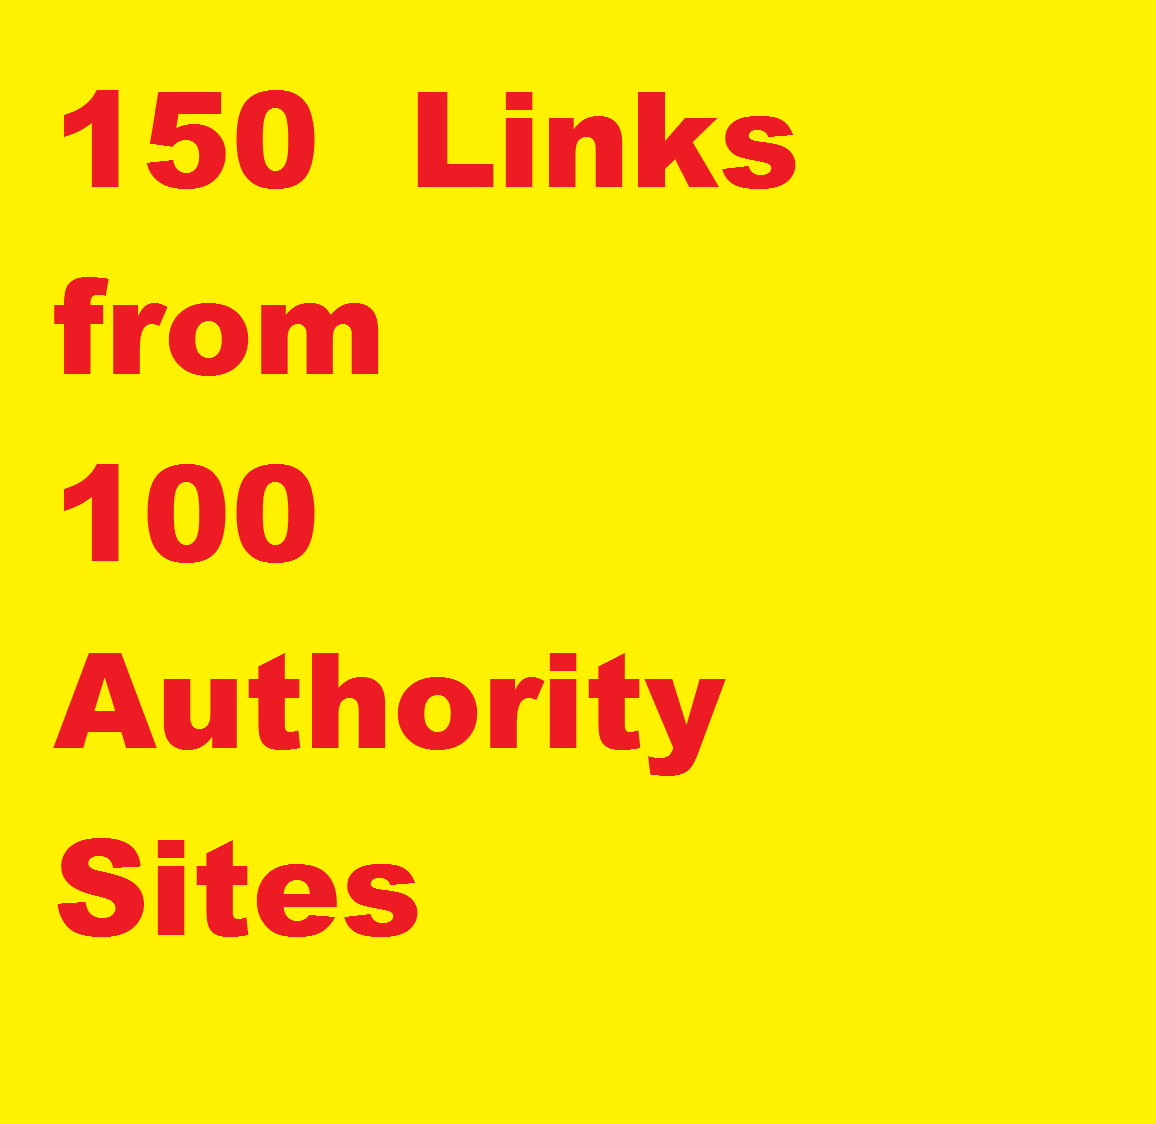 seo link building,  150+ Authority links,  DA 45 to 99 from 100 domains